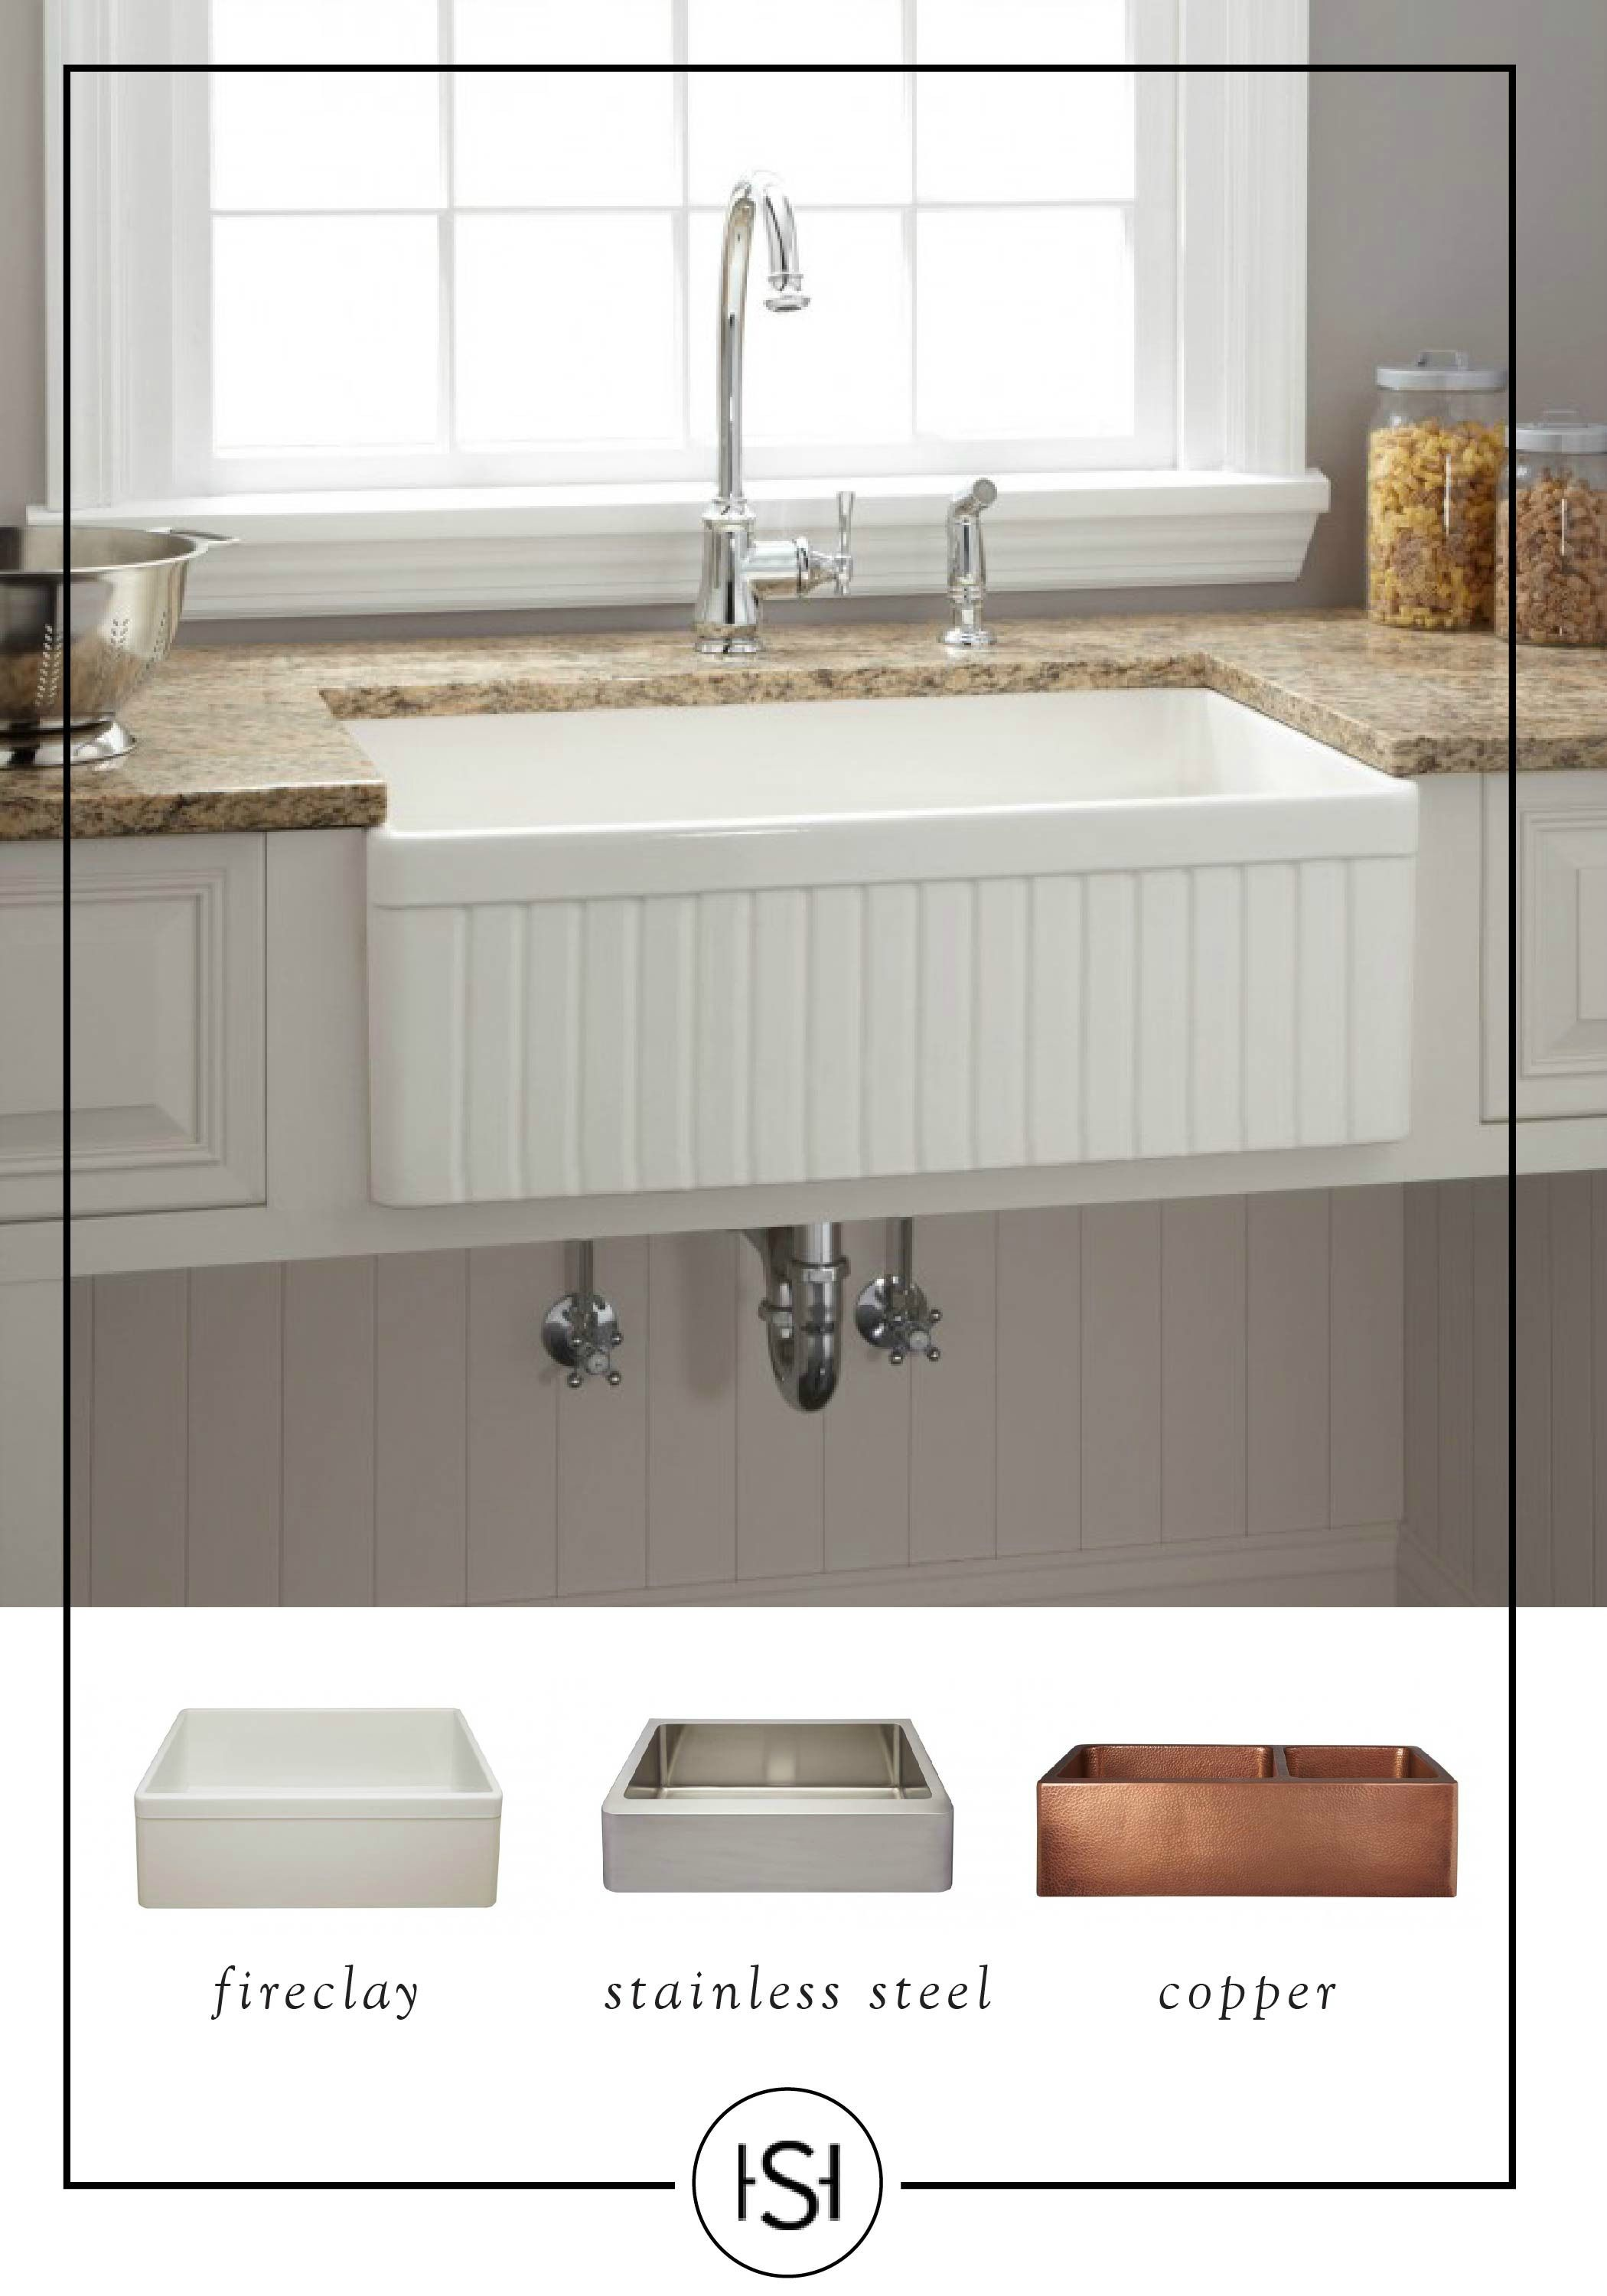 Find The Right Farmhouse Sink For Your Kitchen Remodeling Project